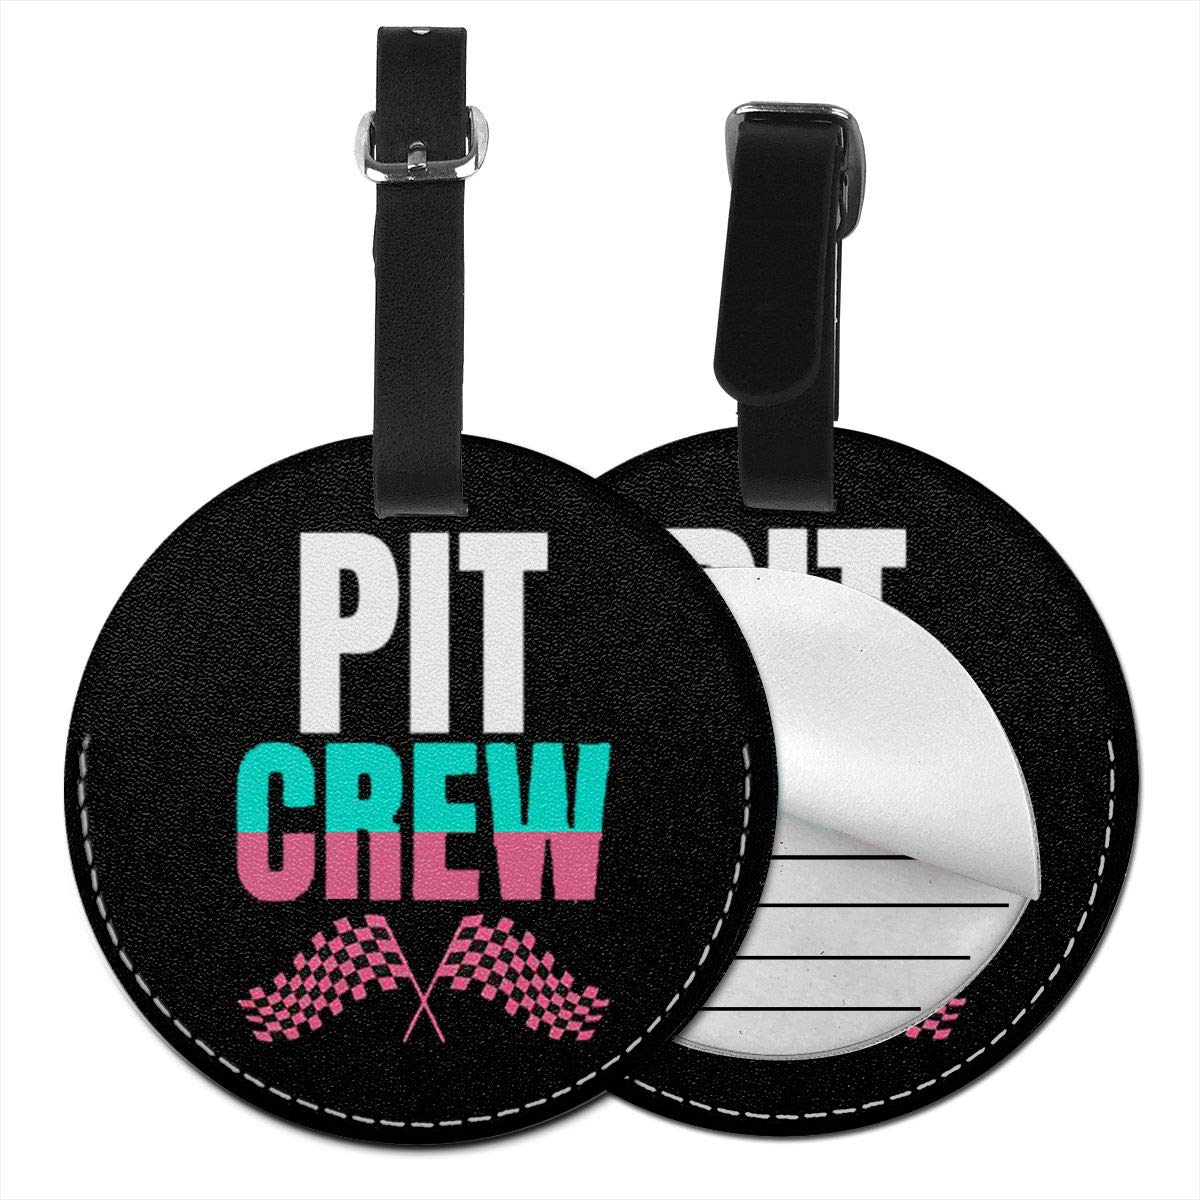 Free-2 Daddys Pit Crew Racing Luggage Tag 3D Print Leather Travel Bag ID Card